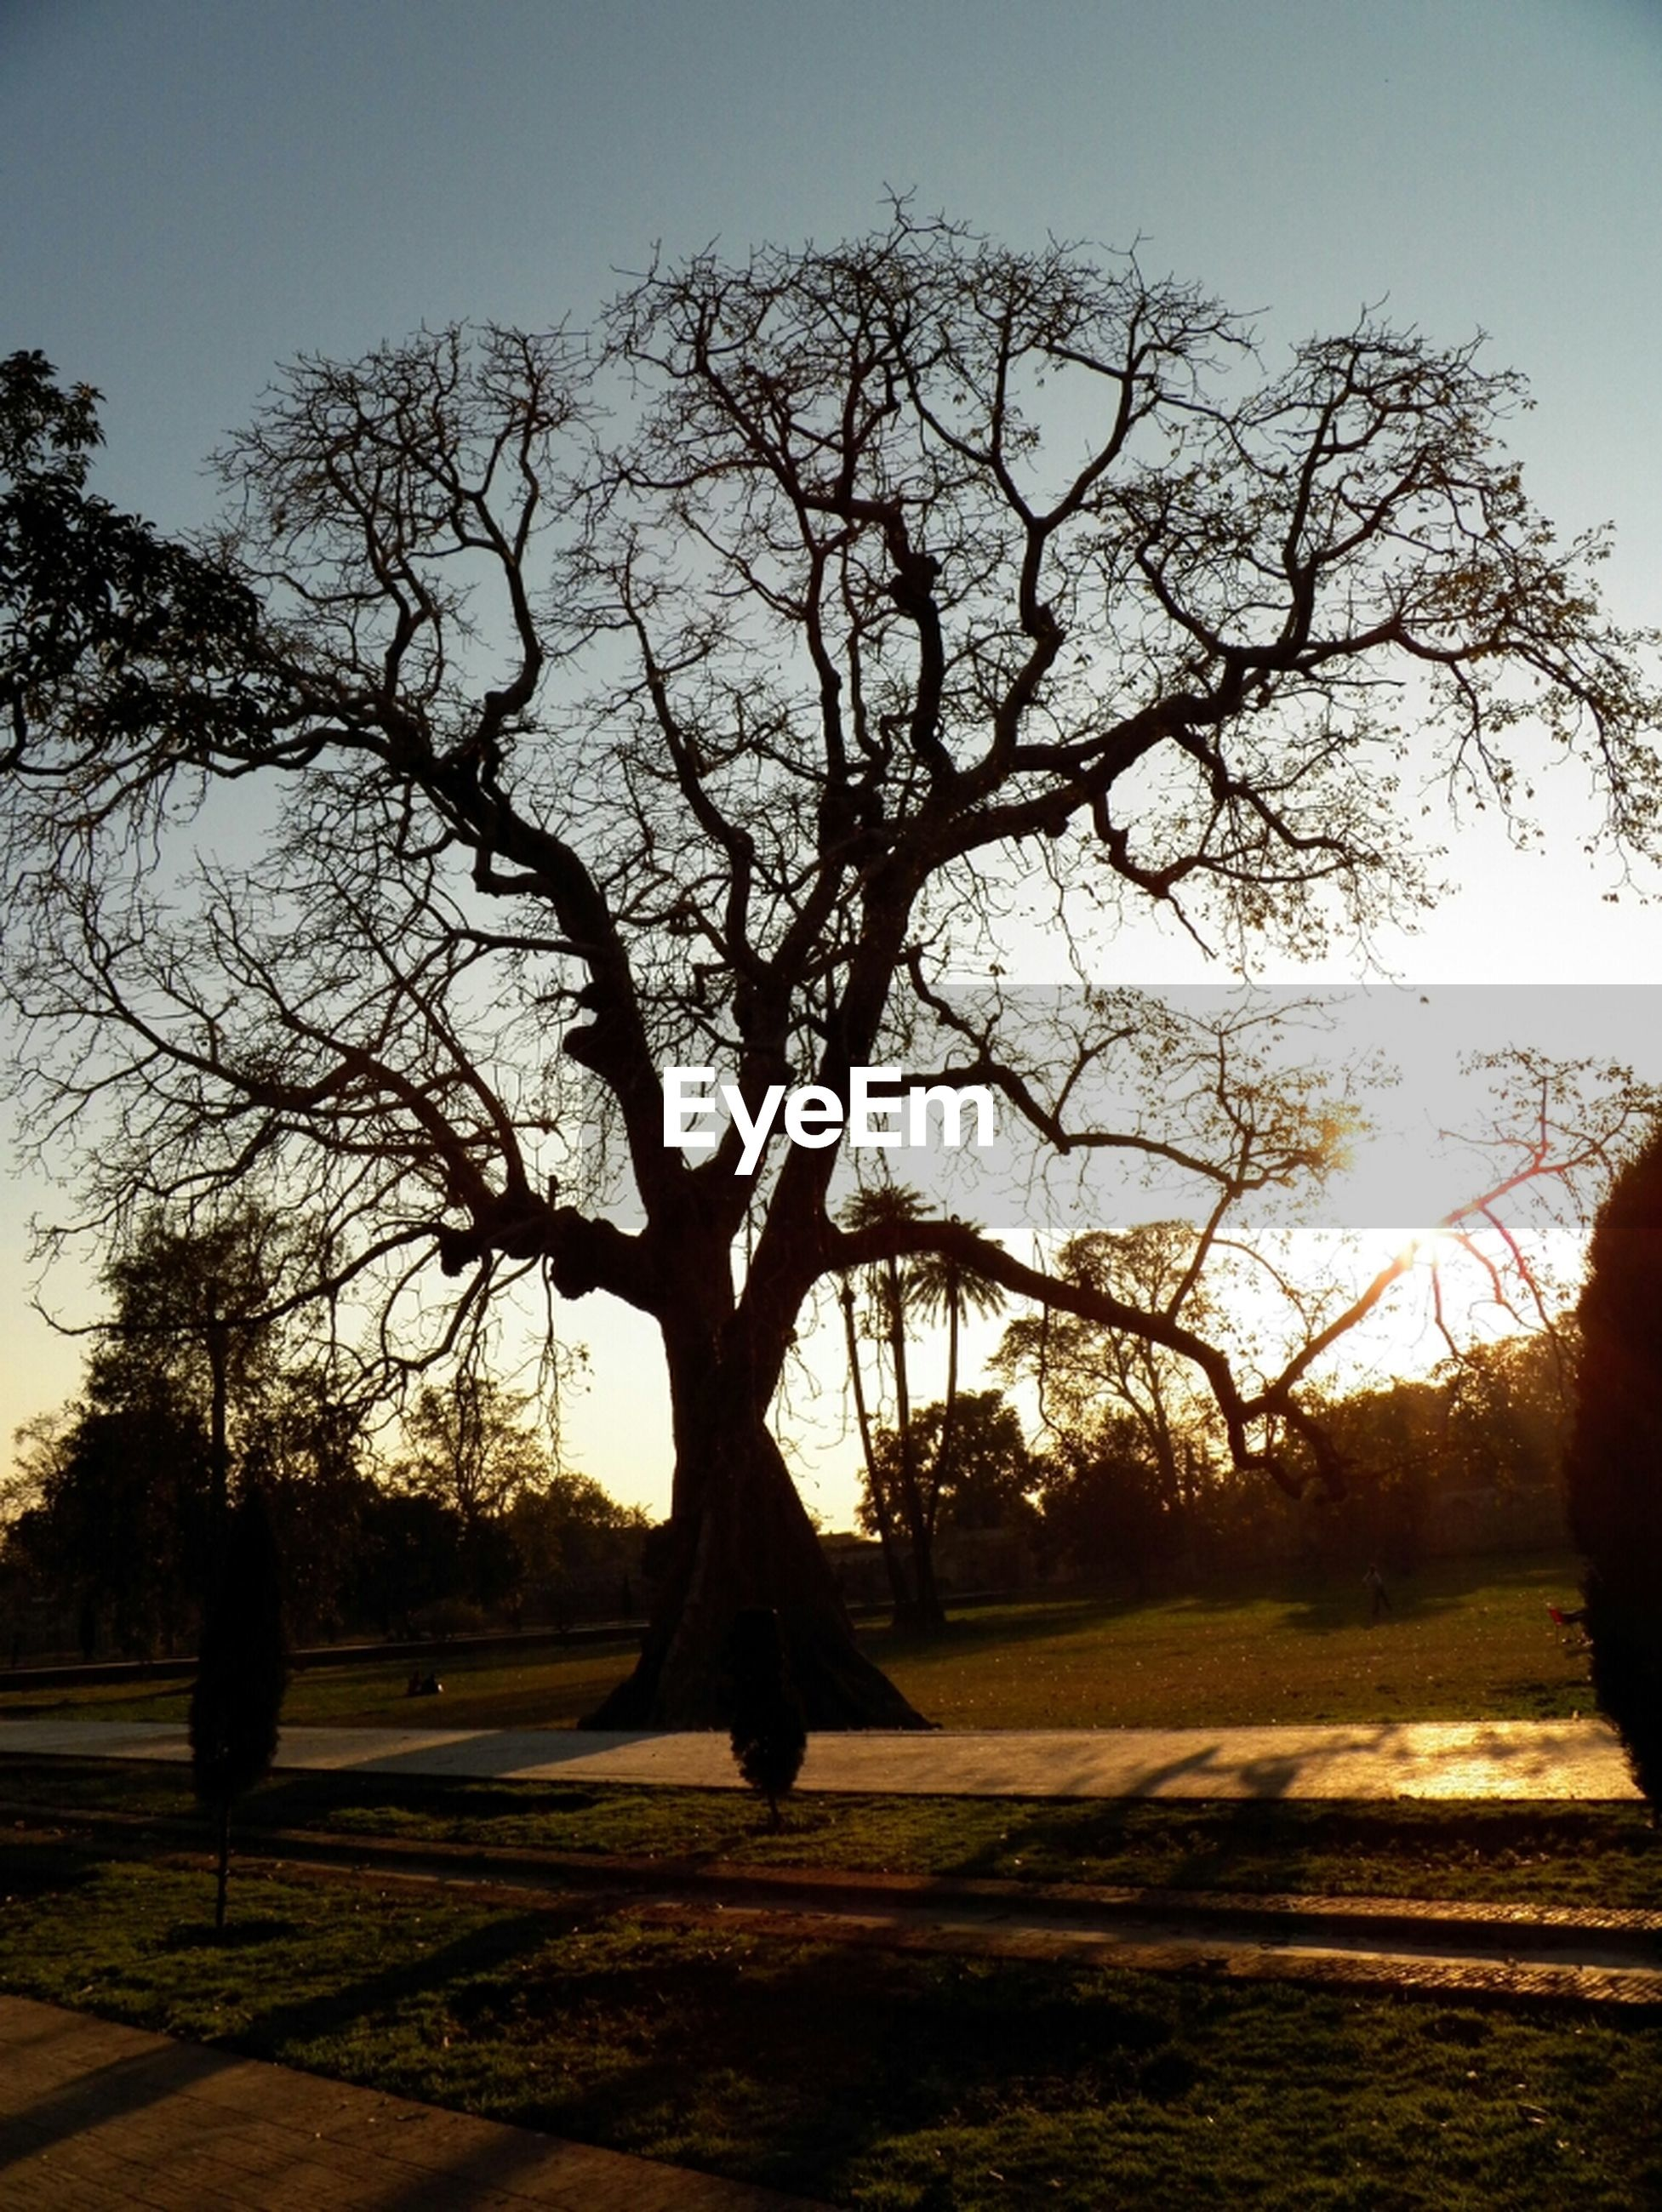 tree, silhouette, sun, sunset, sunlight, bare tree, sky, tranquility, sunbeam, tranquil scene, lens flare, branch, nature, shadow, scenics, beauty in nature, road, back lit, landscape, tree trunk